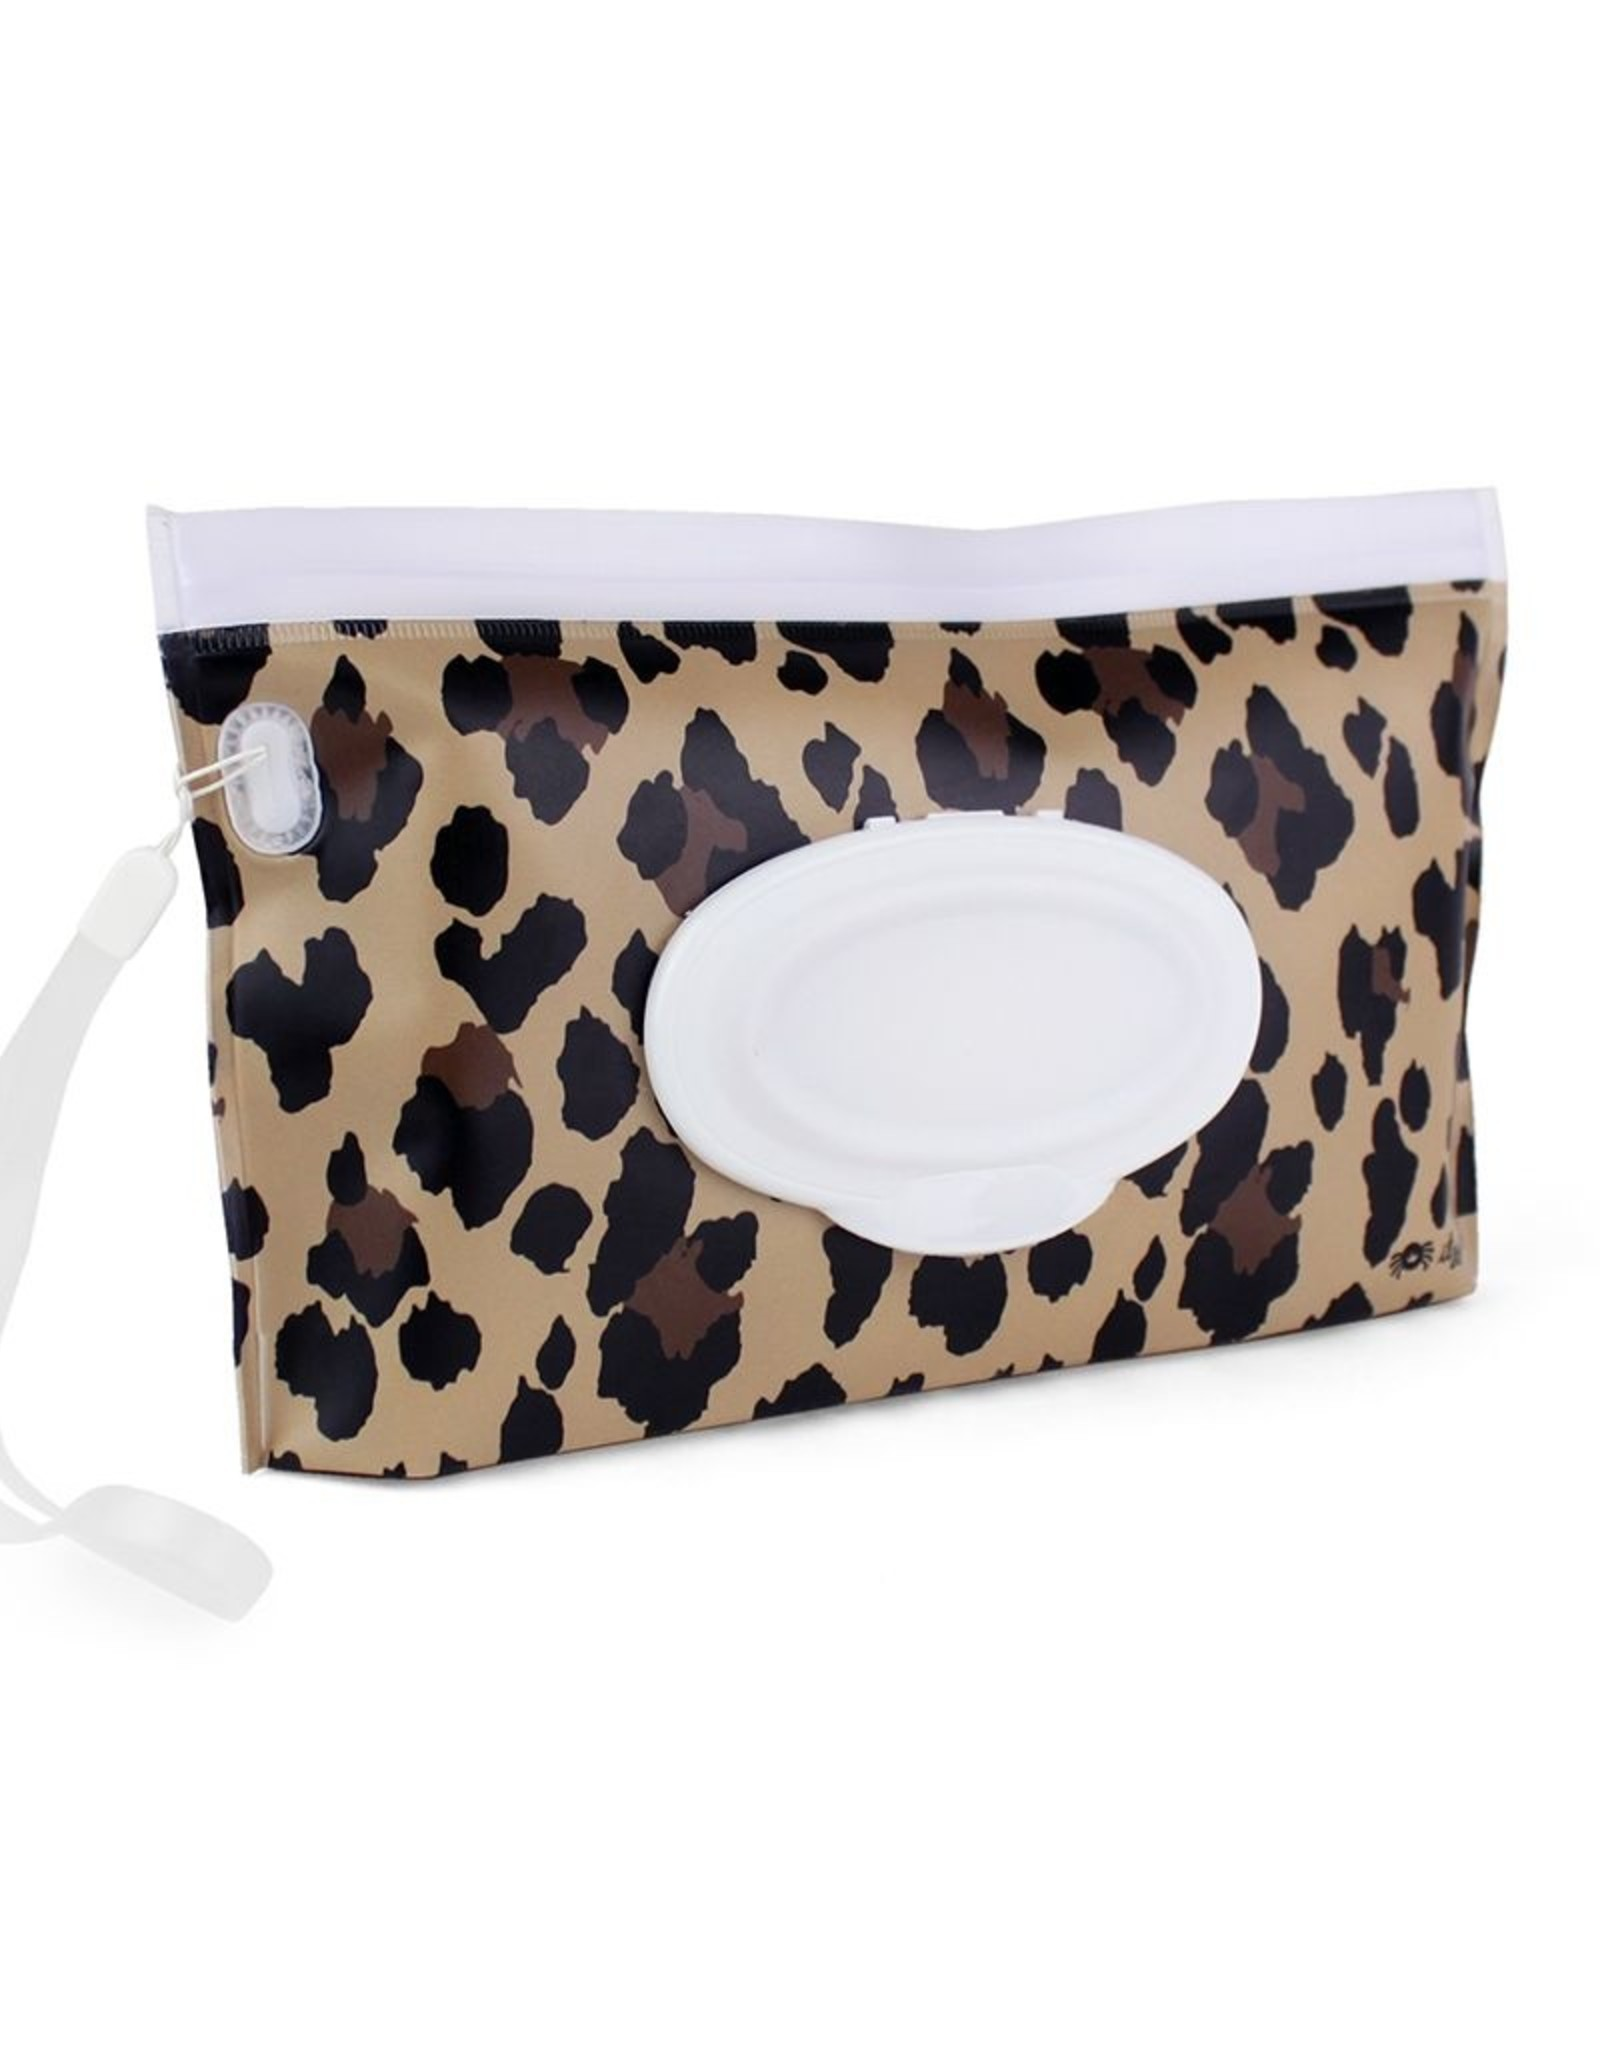 Leopard Itzy Ritzy Reusable Wipe Pouch Includes Silicone Wristlet Strap Take /& Travel Pouch Holds Up To 30 Wet Wipes